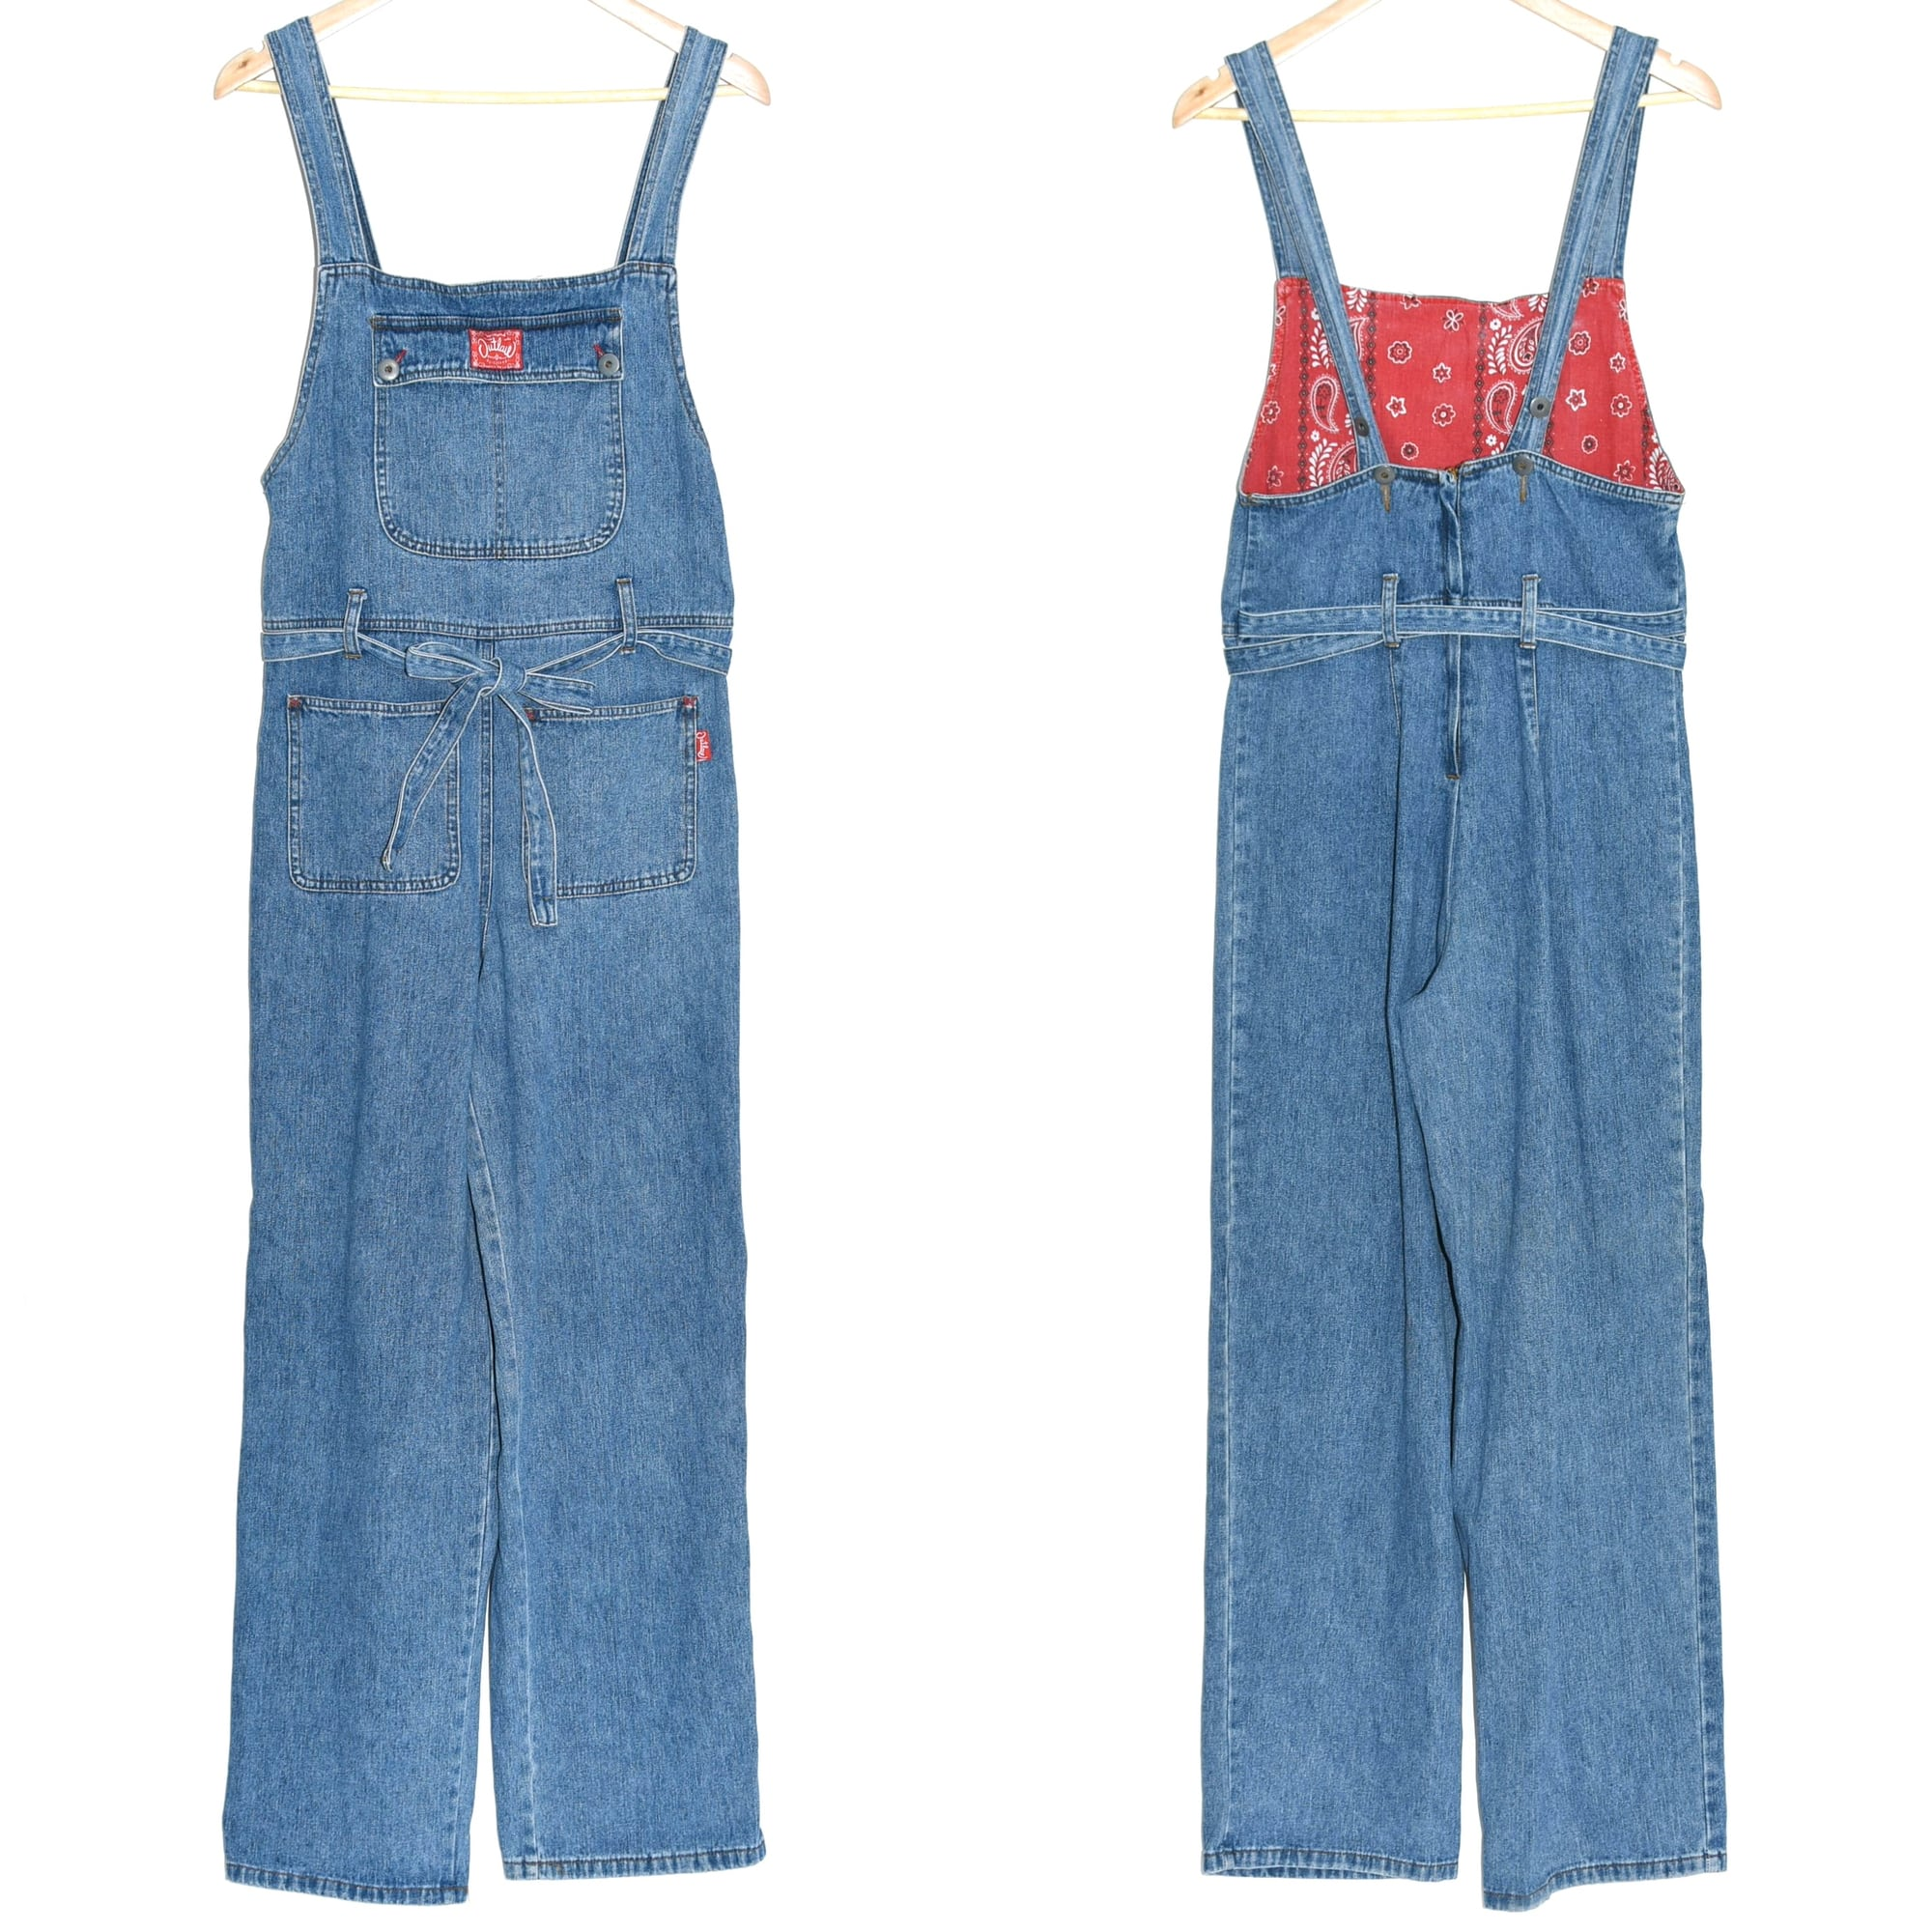 90's Outlaw BLUE JEANS denim overalls